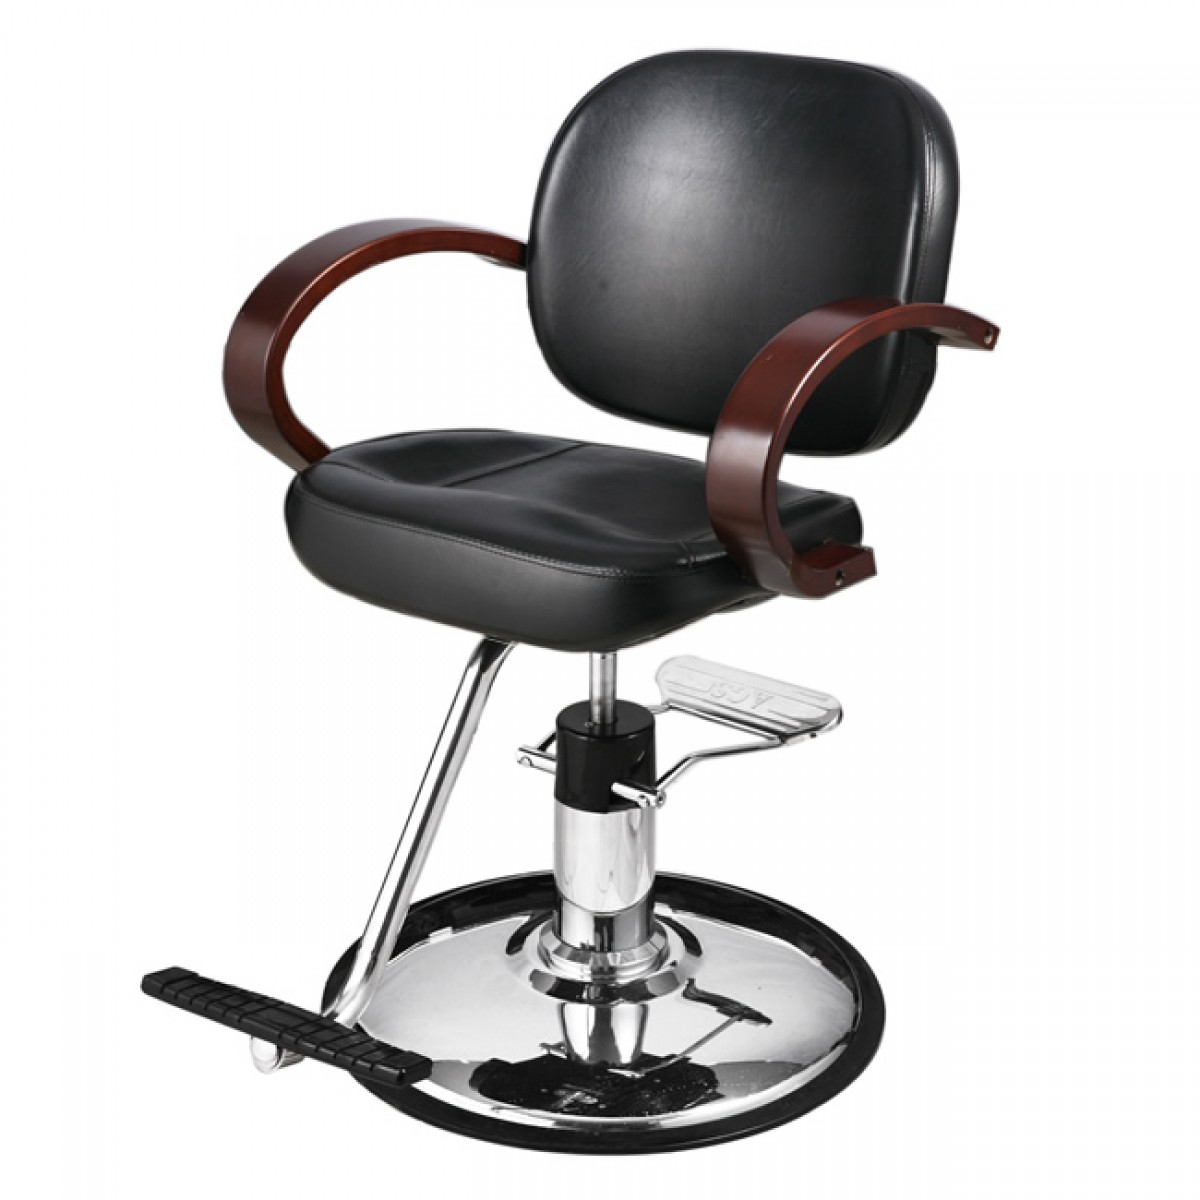 """ORLEY"" Salon Styling Chair"